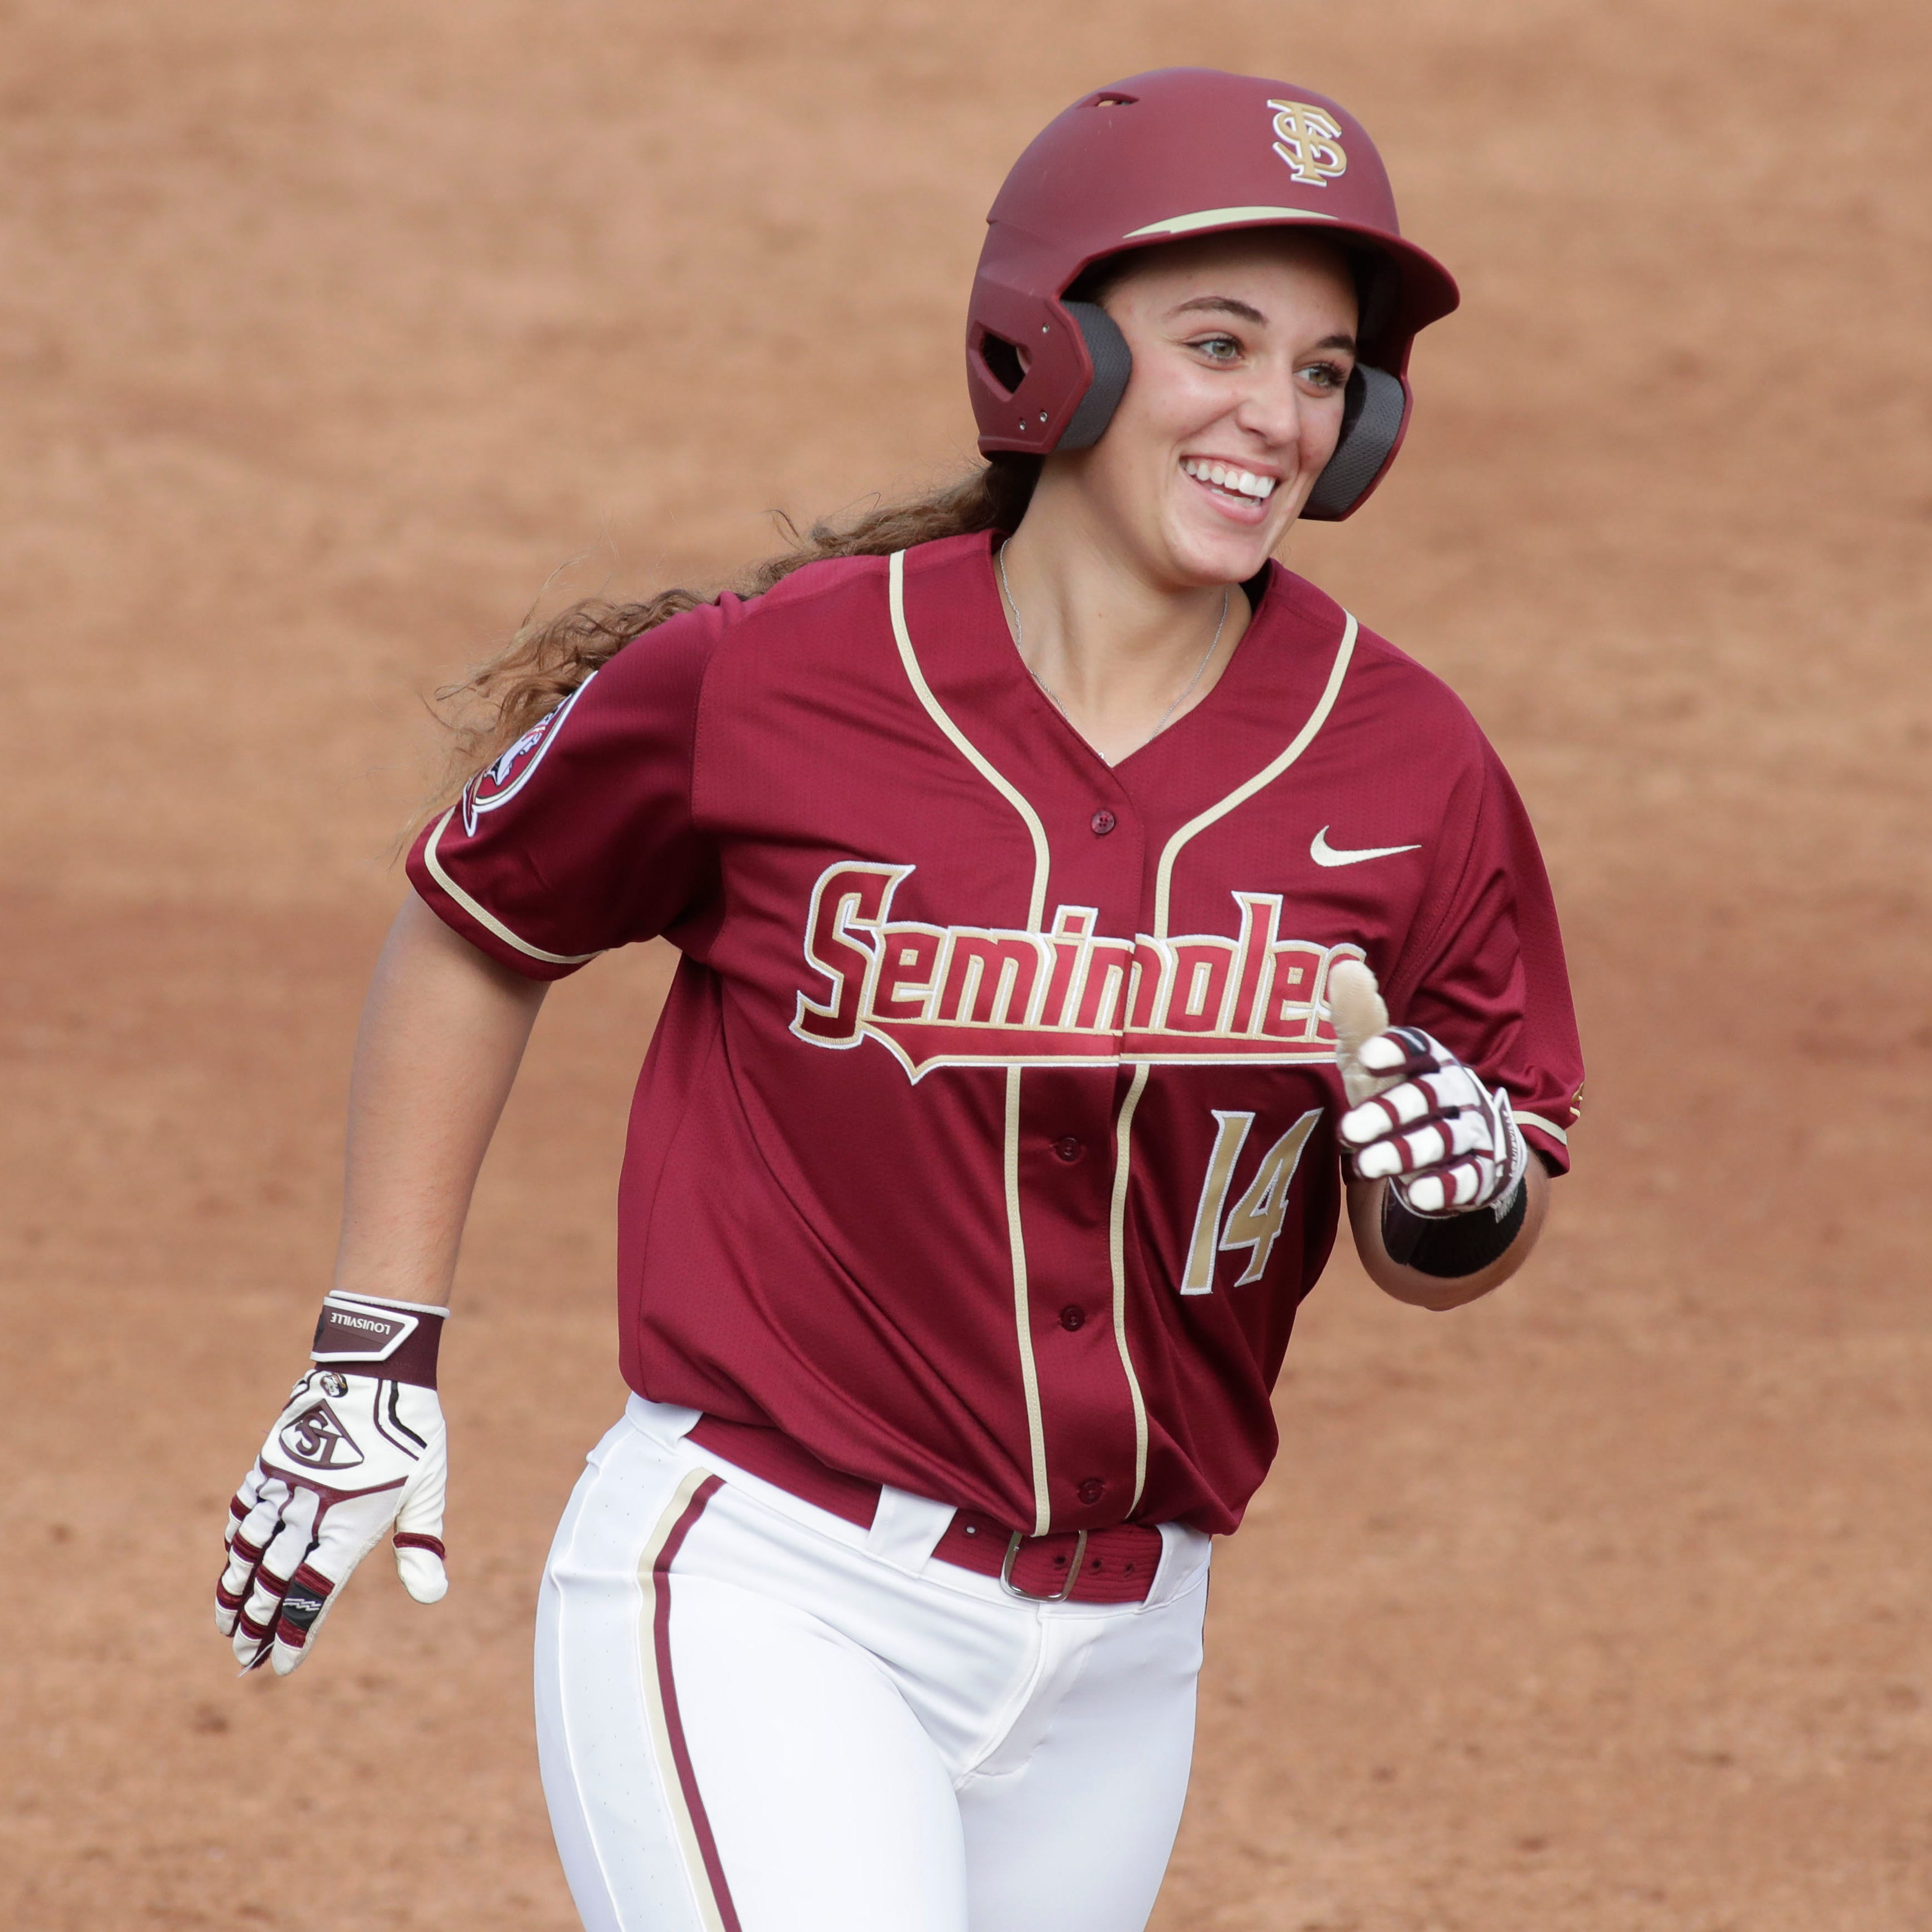 Florida State and FAMU renew acquaintances in softball